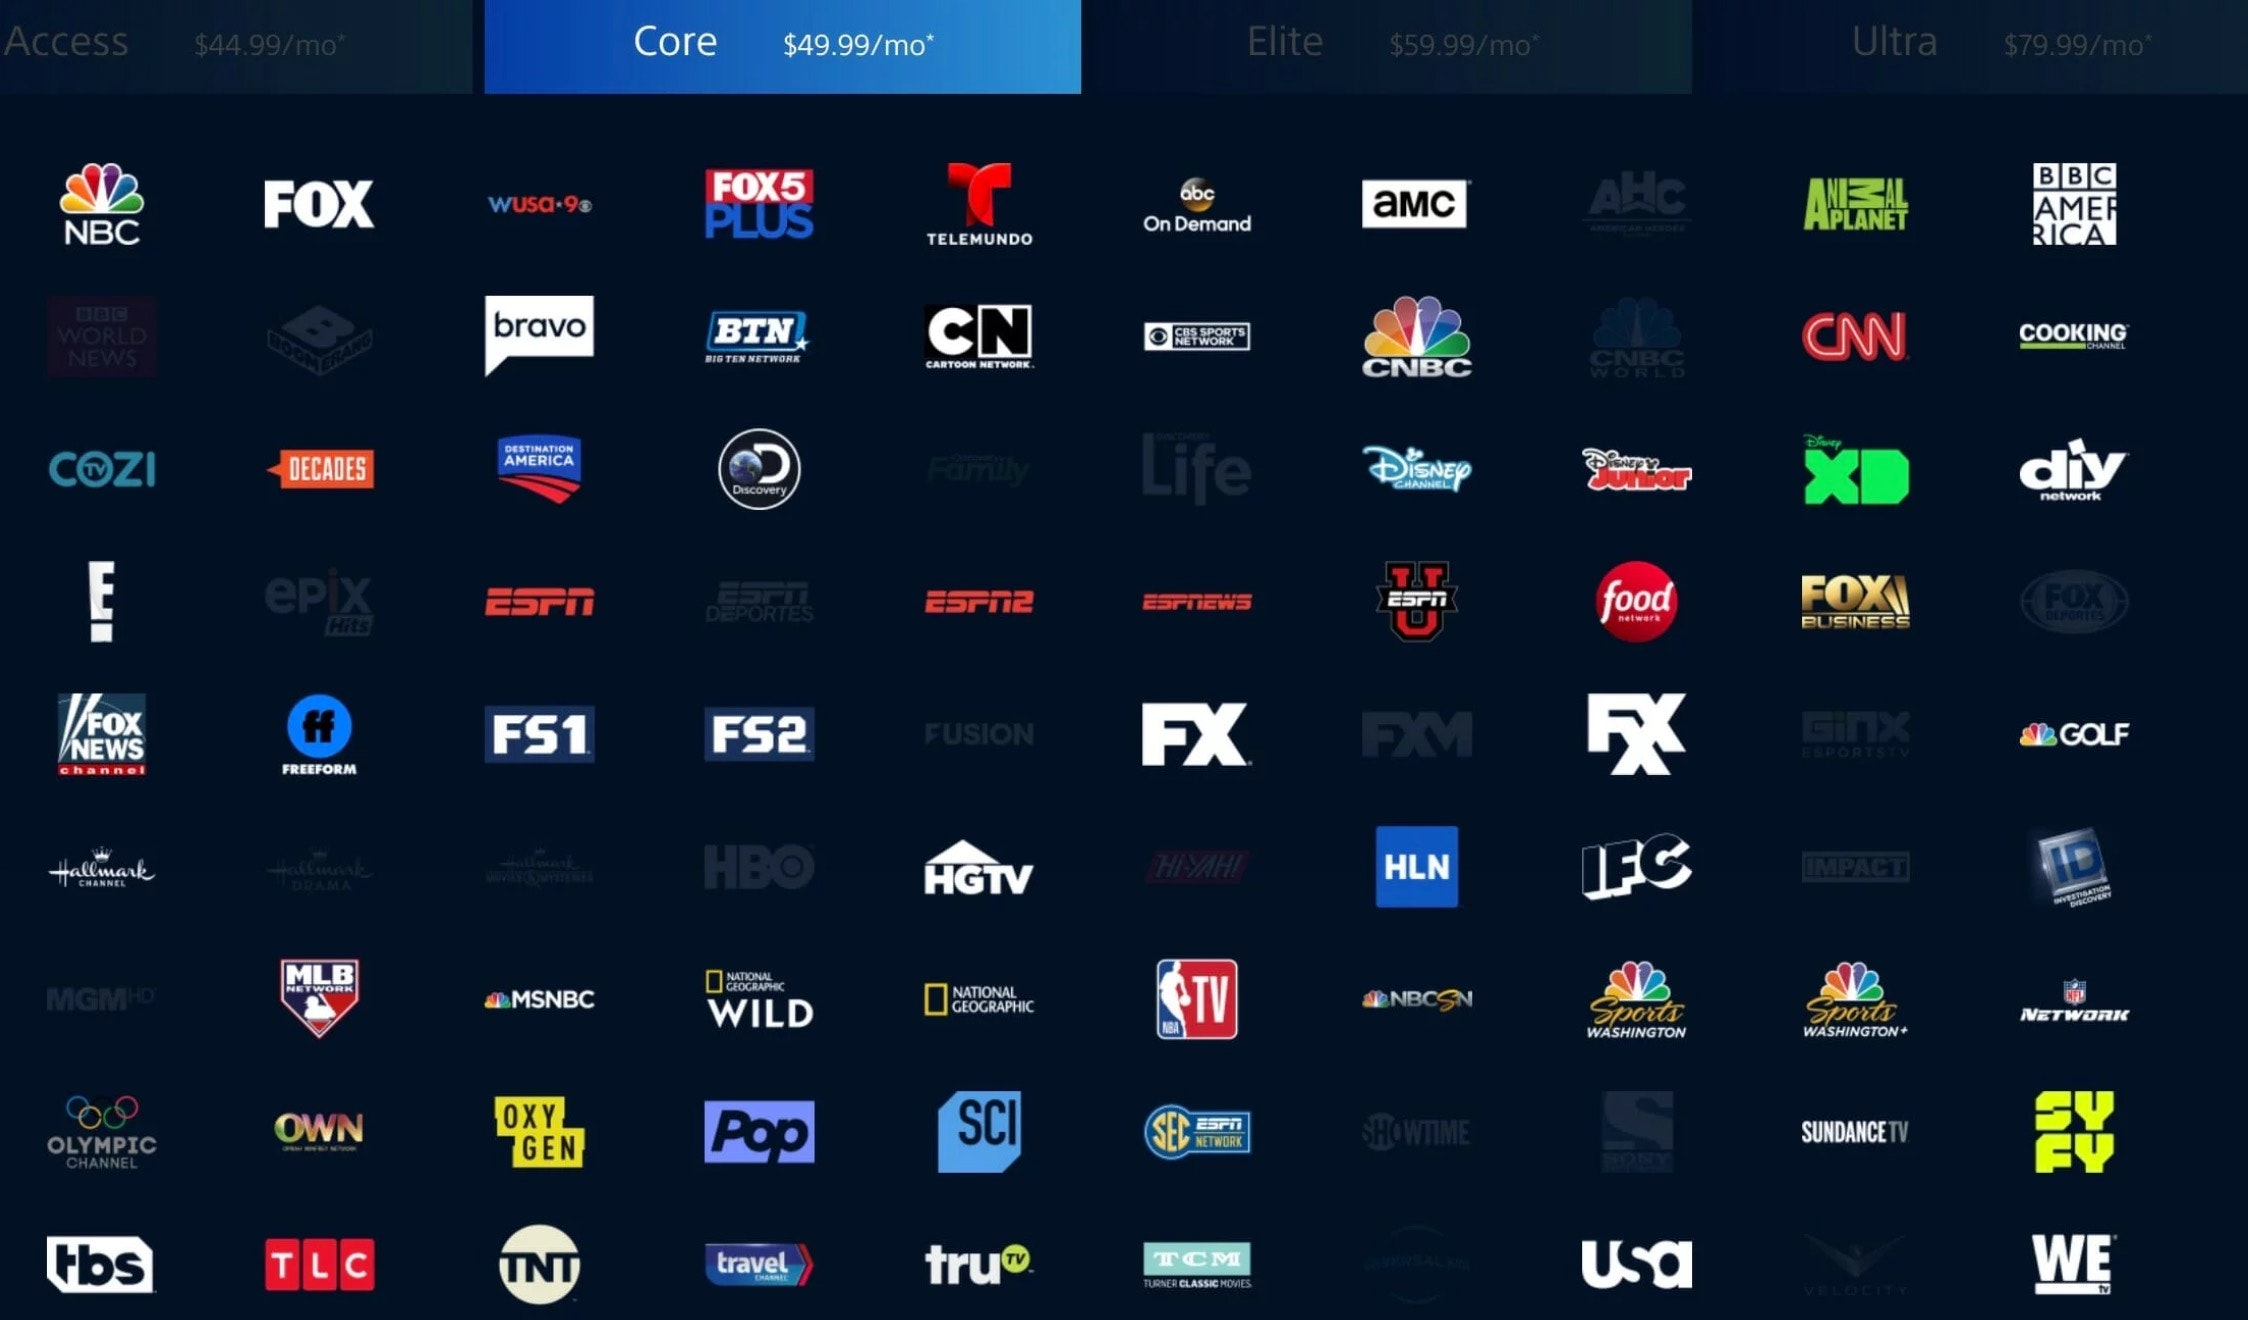 2019 nwsl womens soccer live stream free playstation vue core